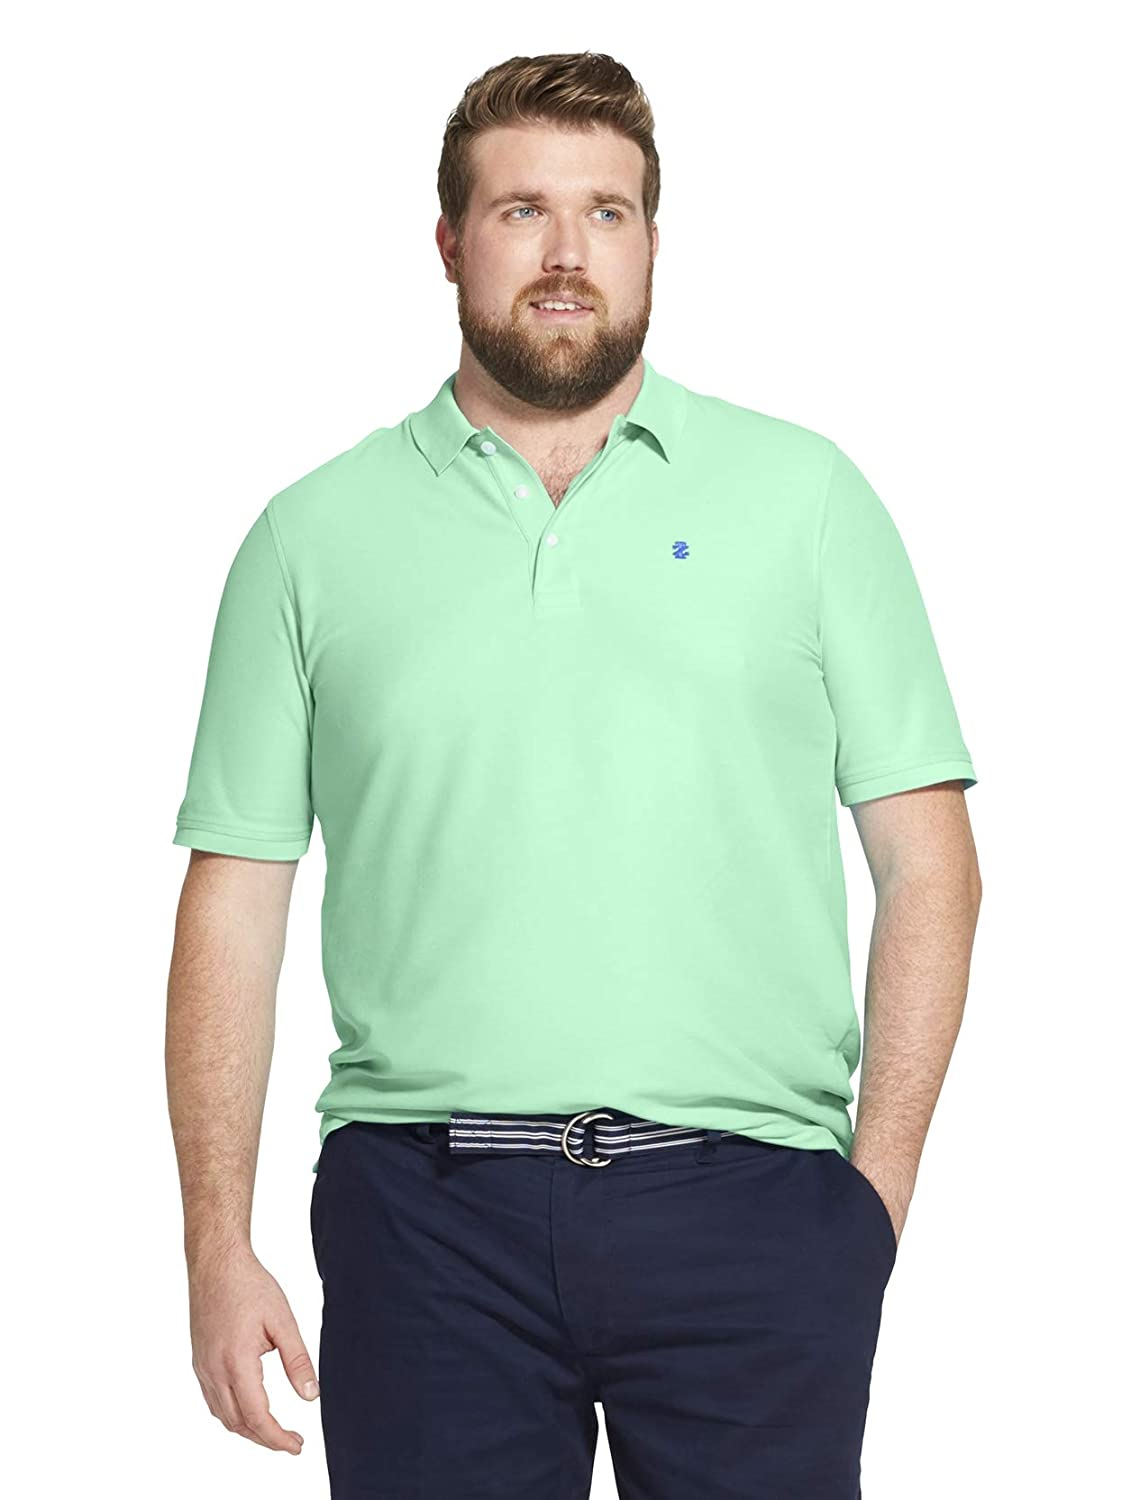 Florida Keys XX-grand grand Izod Homme 45IK000 Polo